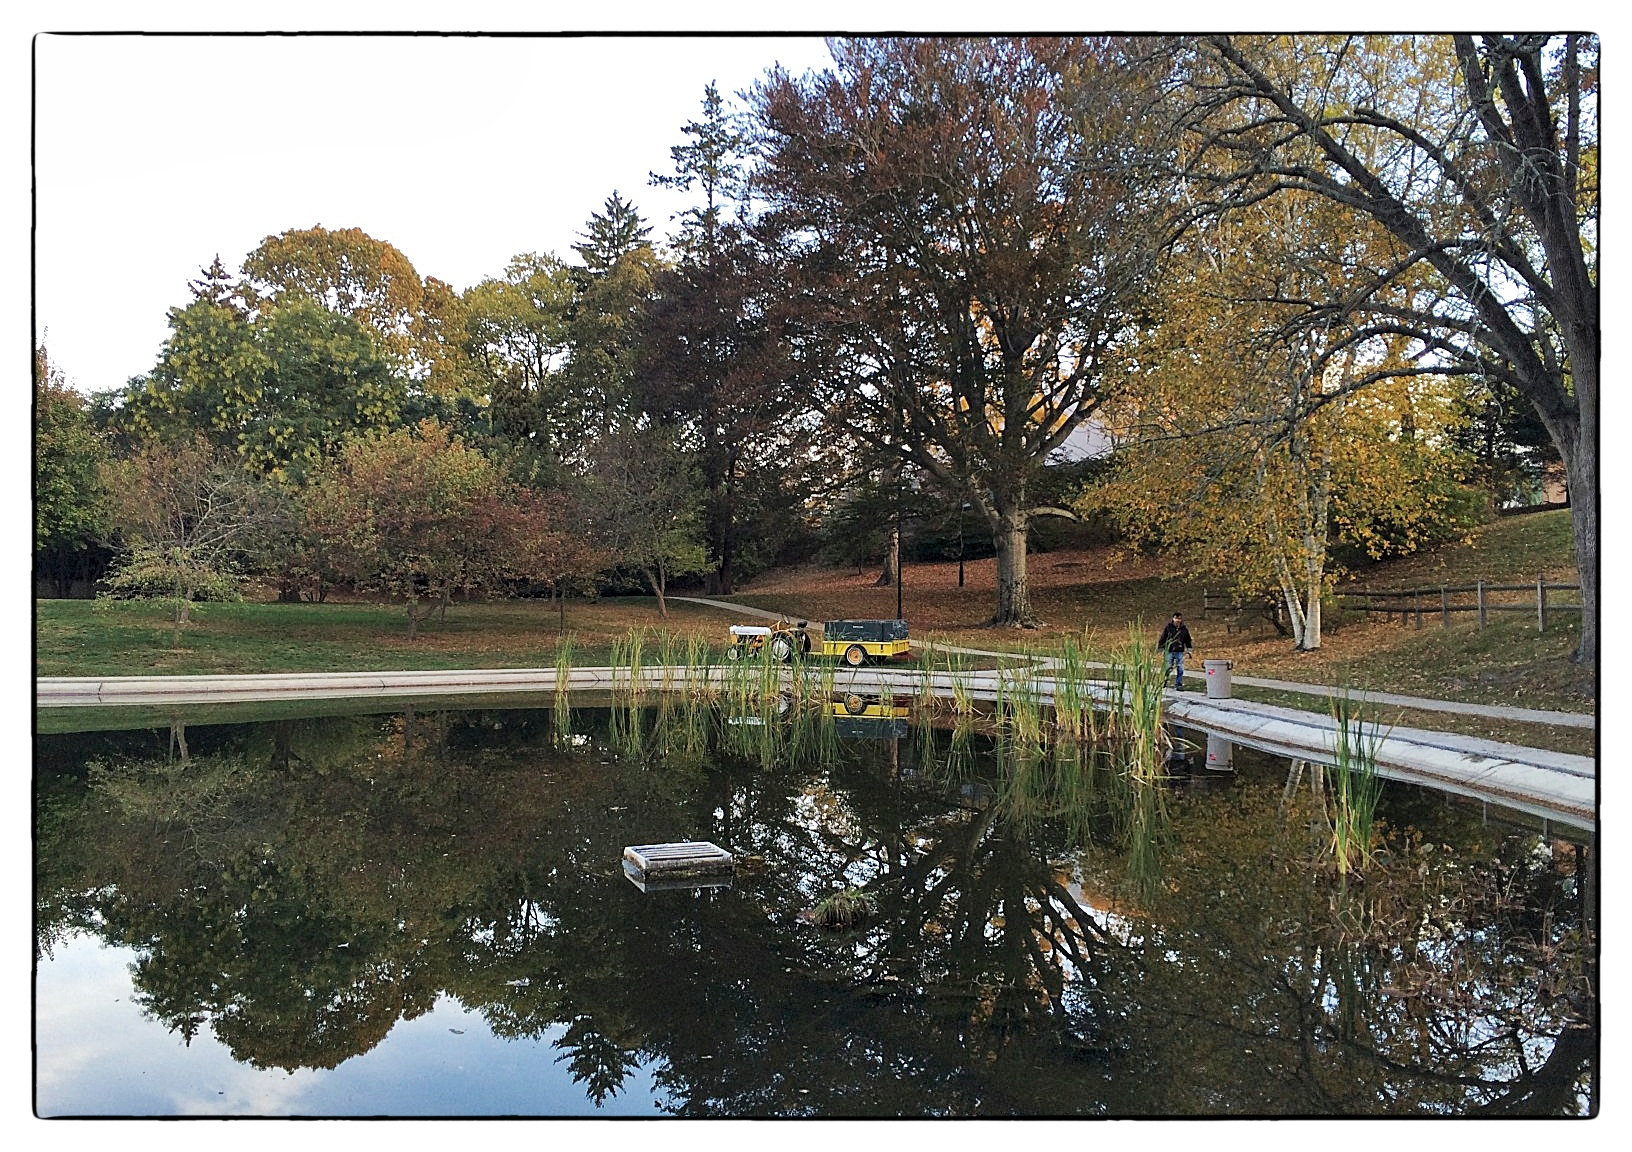 Wilcox Park, Westerly, R.I., shot October 23, 2013.